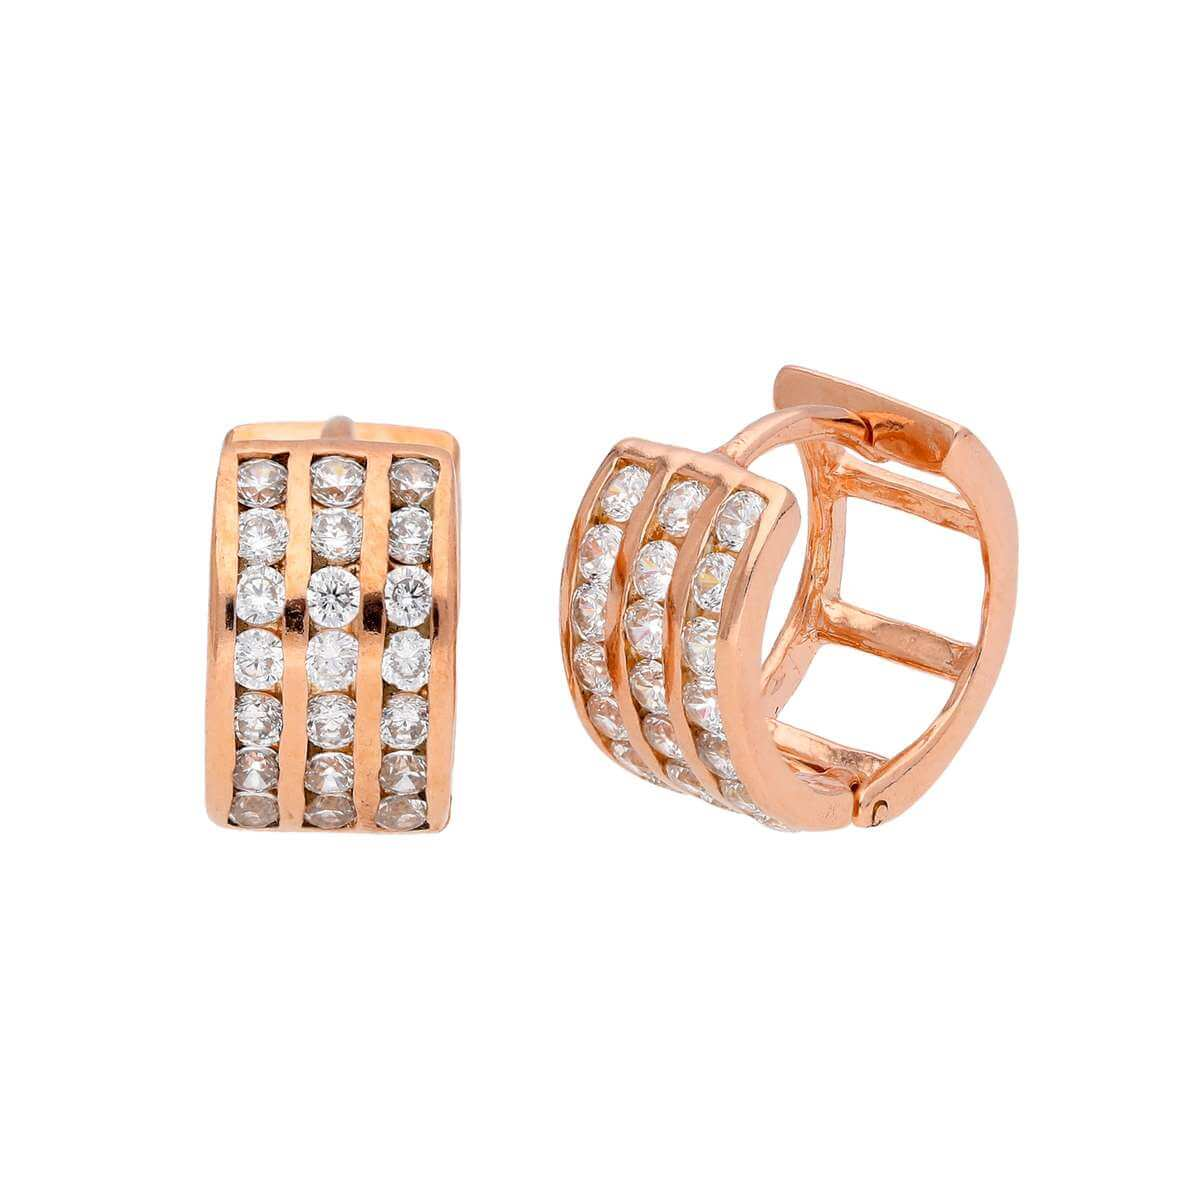 Rose Gold Plated Sterling Silver CZ 13mm Huggy Hoop Earrings